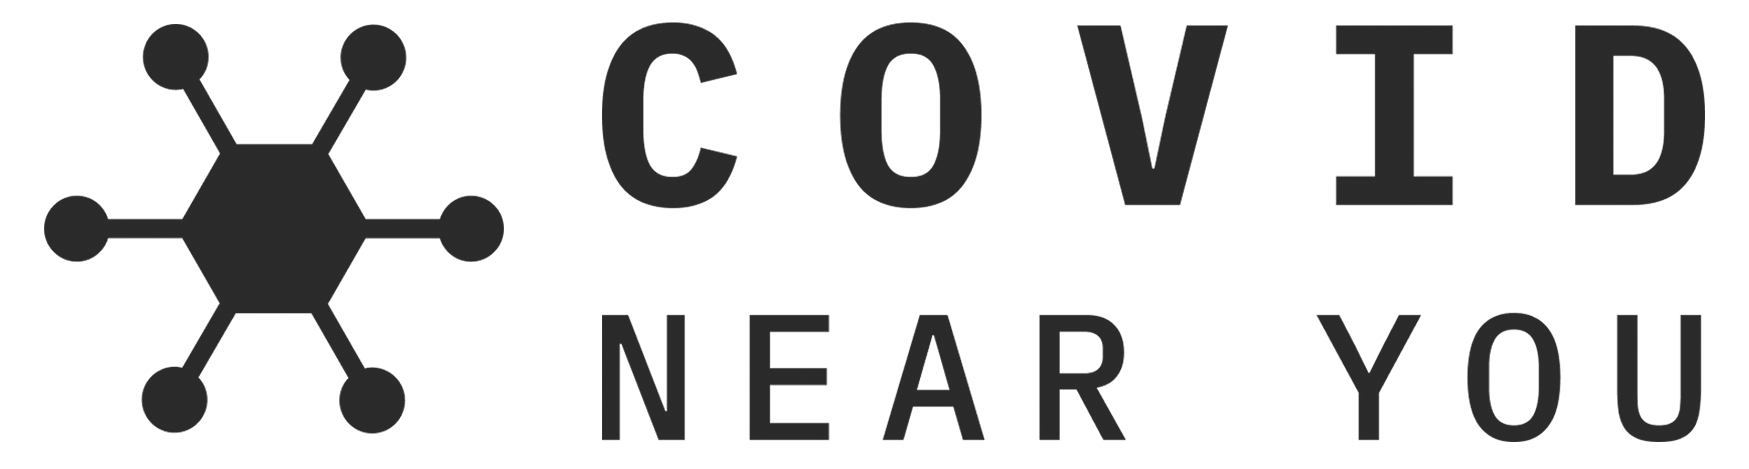 logo that says 'covid near you'